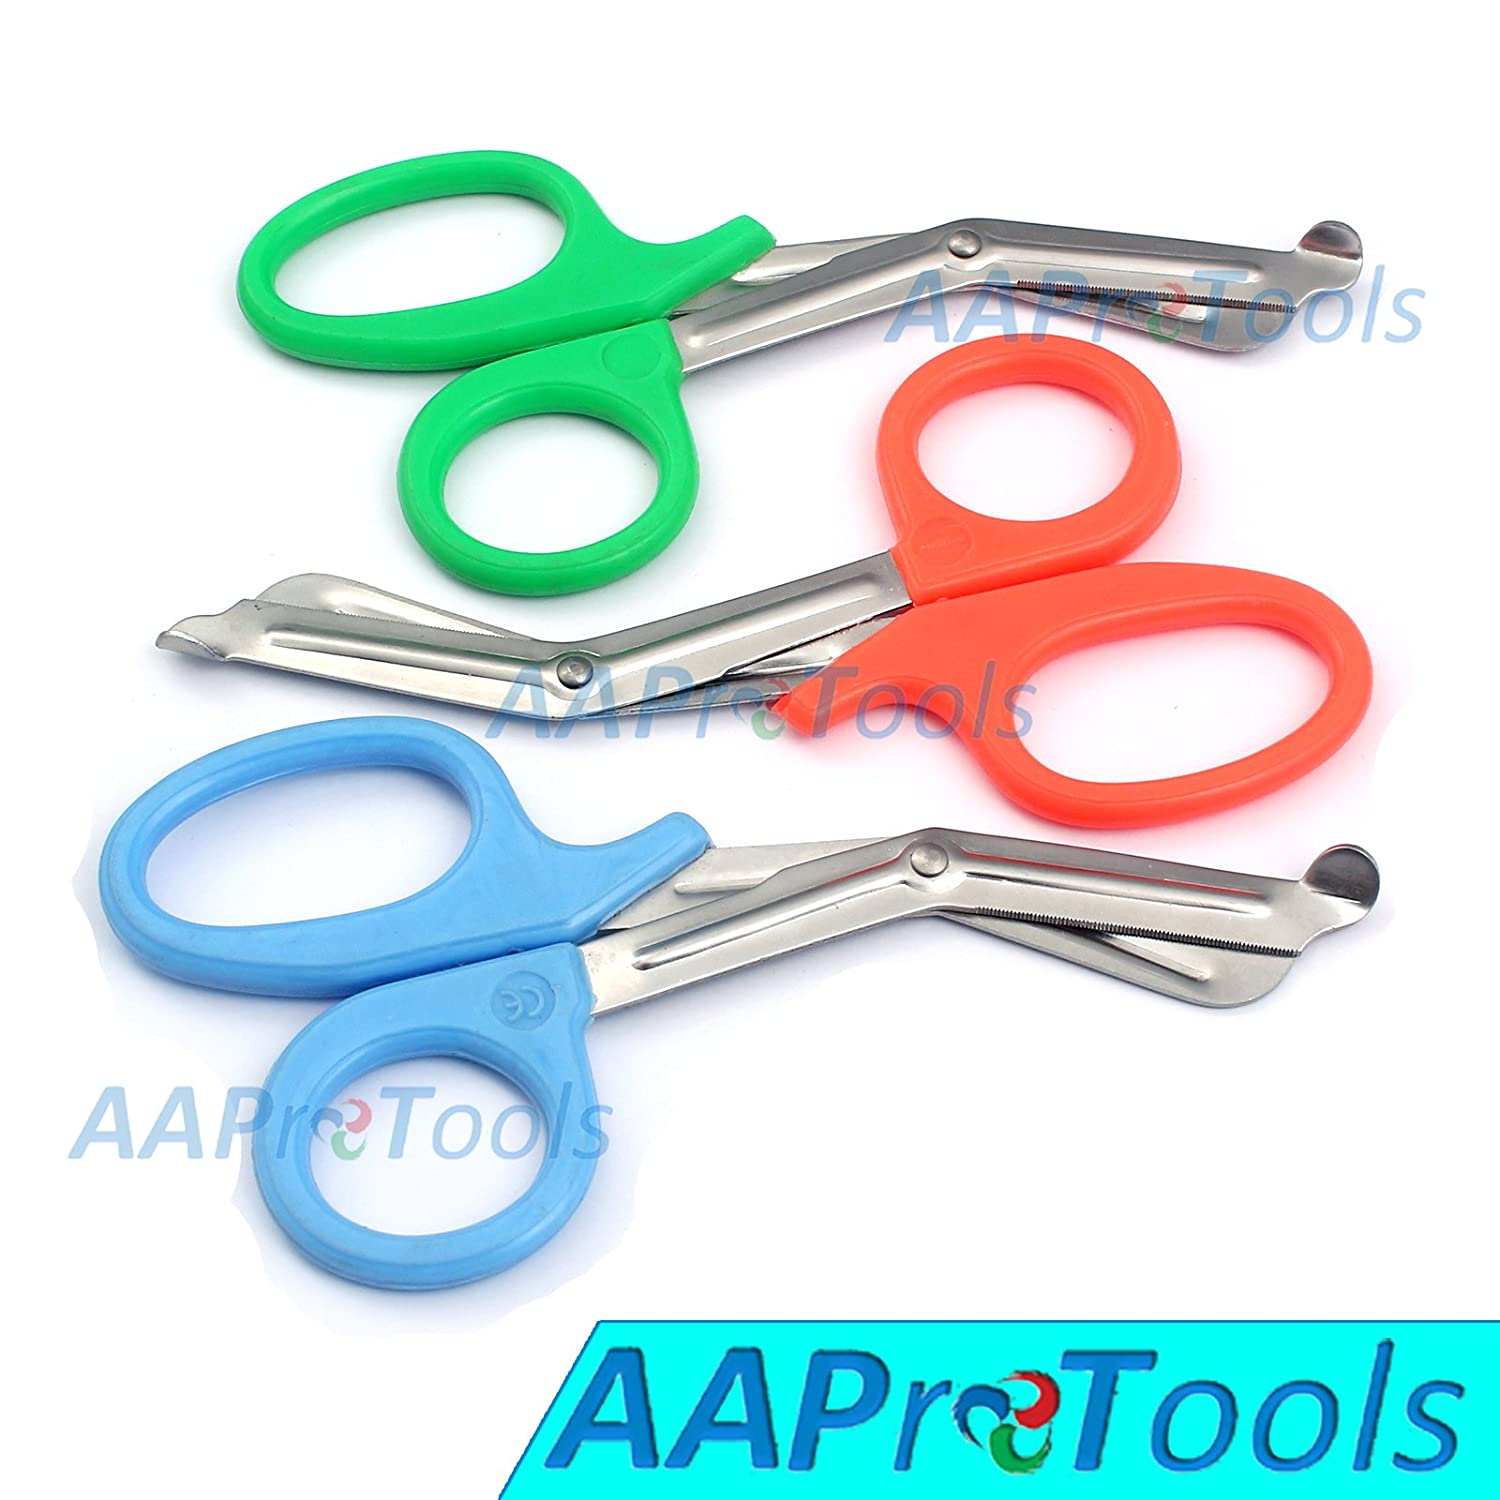 "AAPROTOOLS SET OF 3 ( ORANGE SKY BLUE GREEN) TRAUMA PARAMEDIC EMT SHEARS SCISSORS 7.5"" A+ QUALITY"